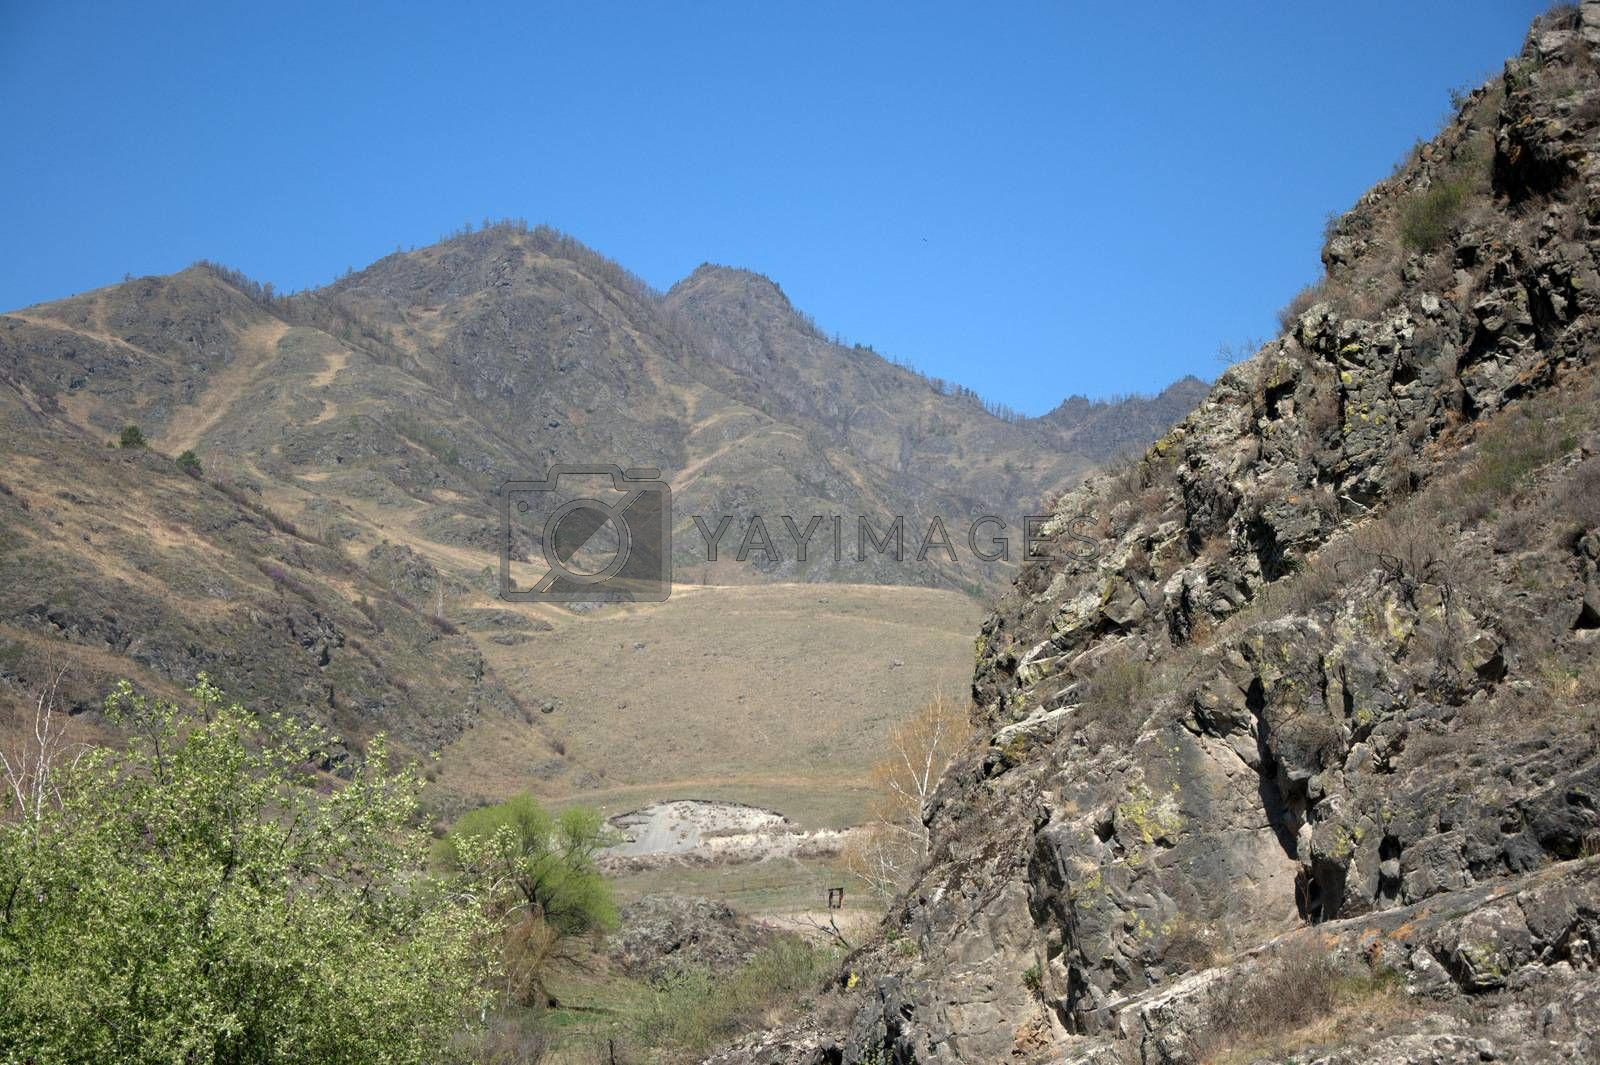 View of the fertile valley surrounded by high mountains under a clear blue sky. by Alex Yellow